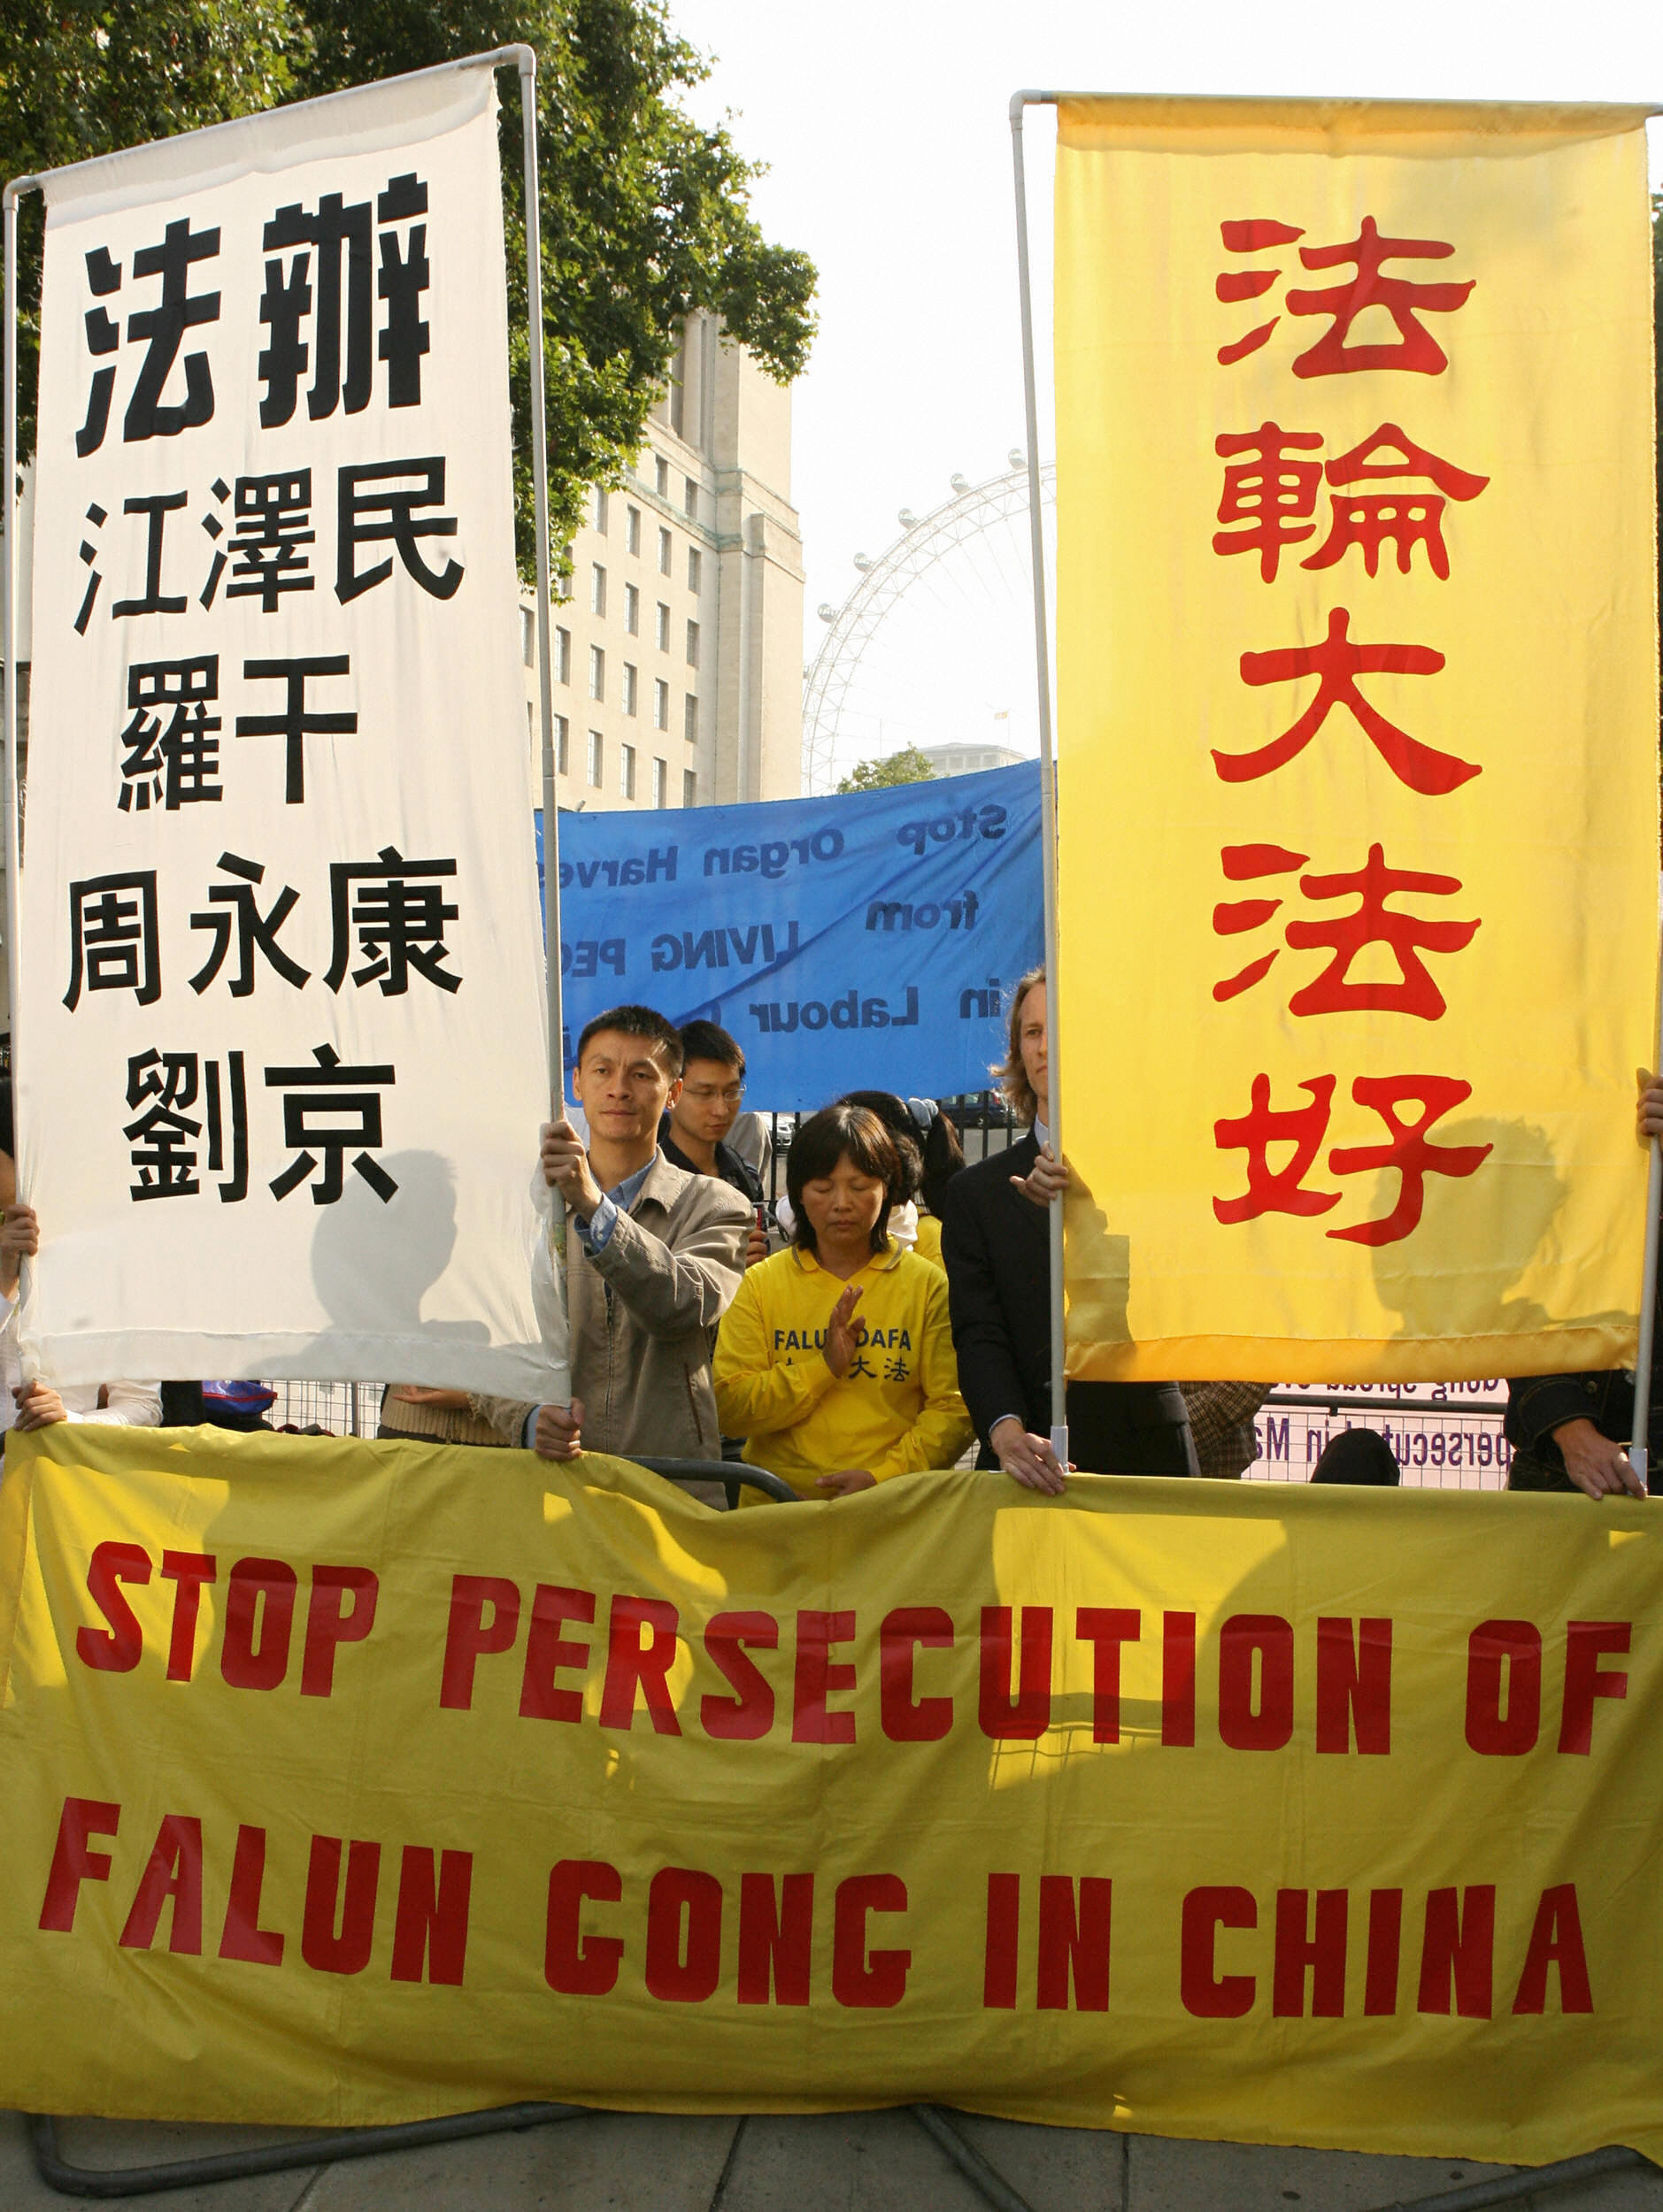 Falun Gong protestors gather outside 10 Downing Street in London, 13 September 2006. (JOHN D MCHUGH/AFP via Getty Images)